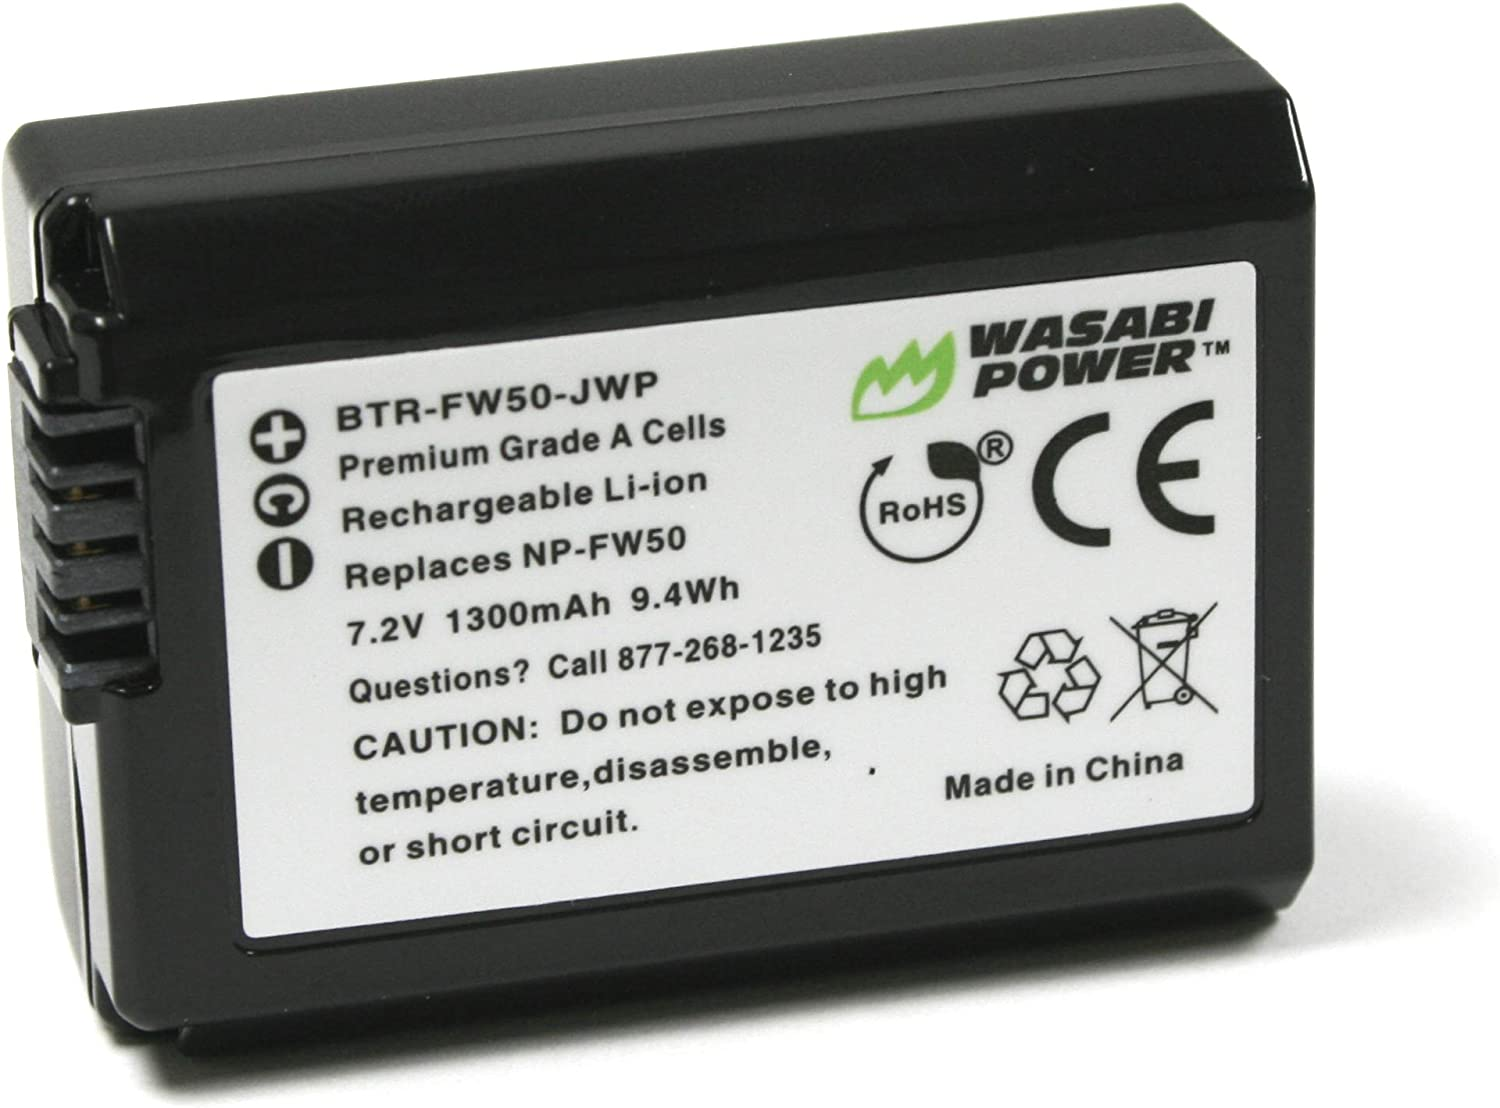 NP-FW50 Wasabi Power Camera Battery for Sony Alpha a5100, a6000, a6300, a6400, a6500, Alpha a7, a7 II, a7R, a7R II, a7S, a7S II, Cyber-Shot DSC-RX10 II, RX10 III, RX10 IV and More